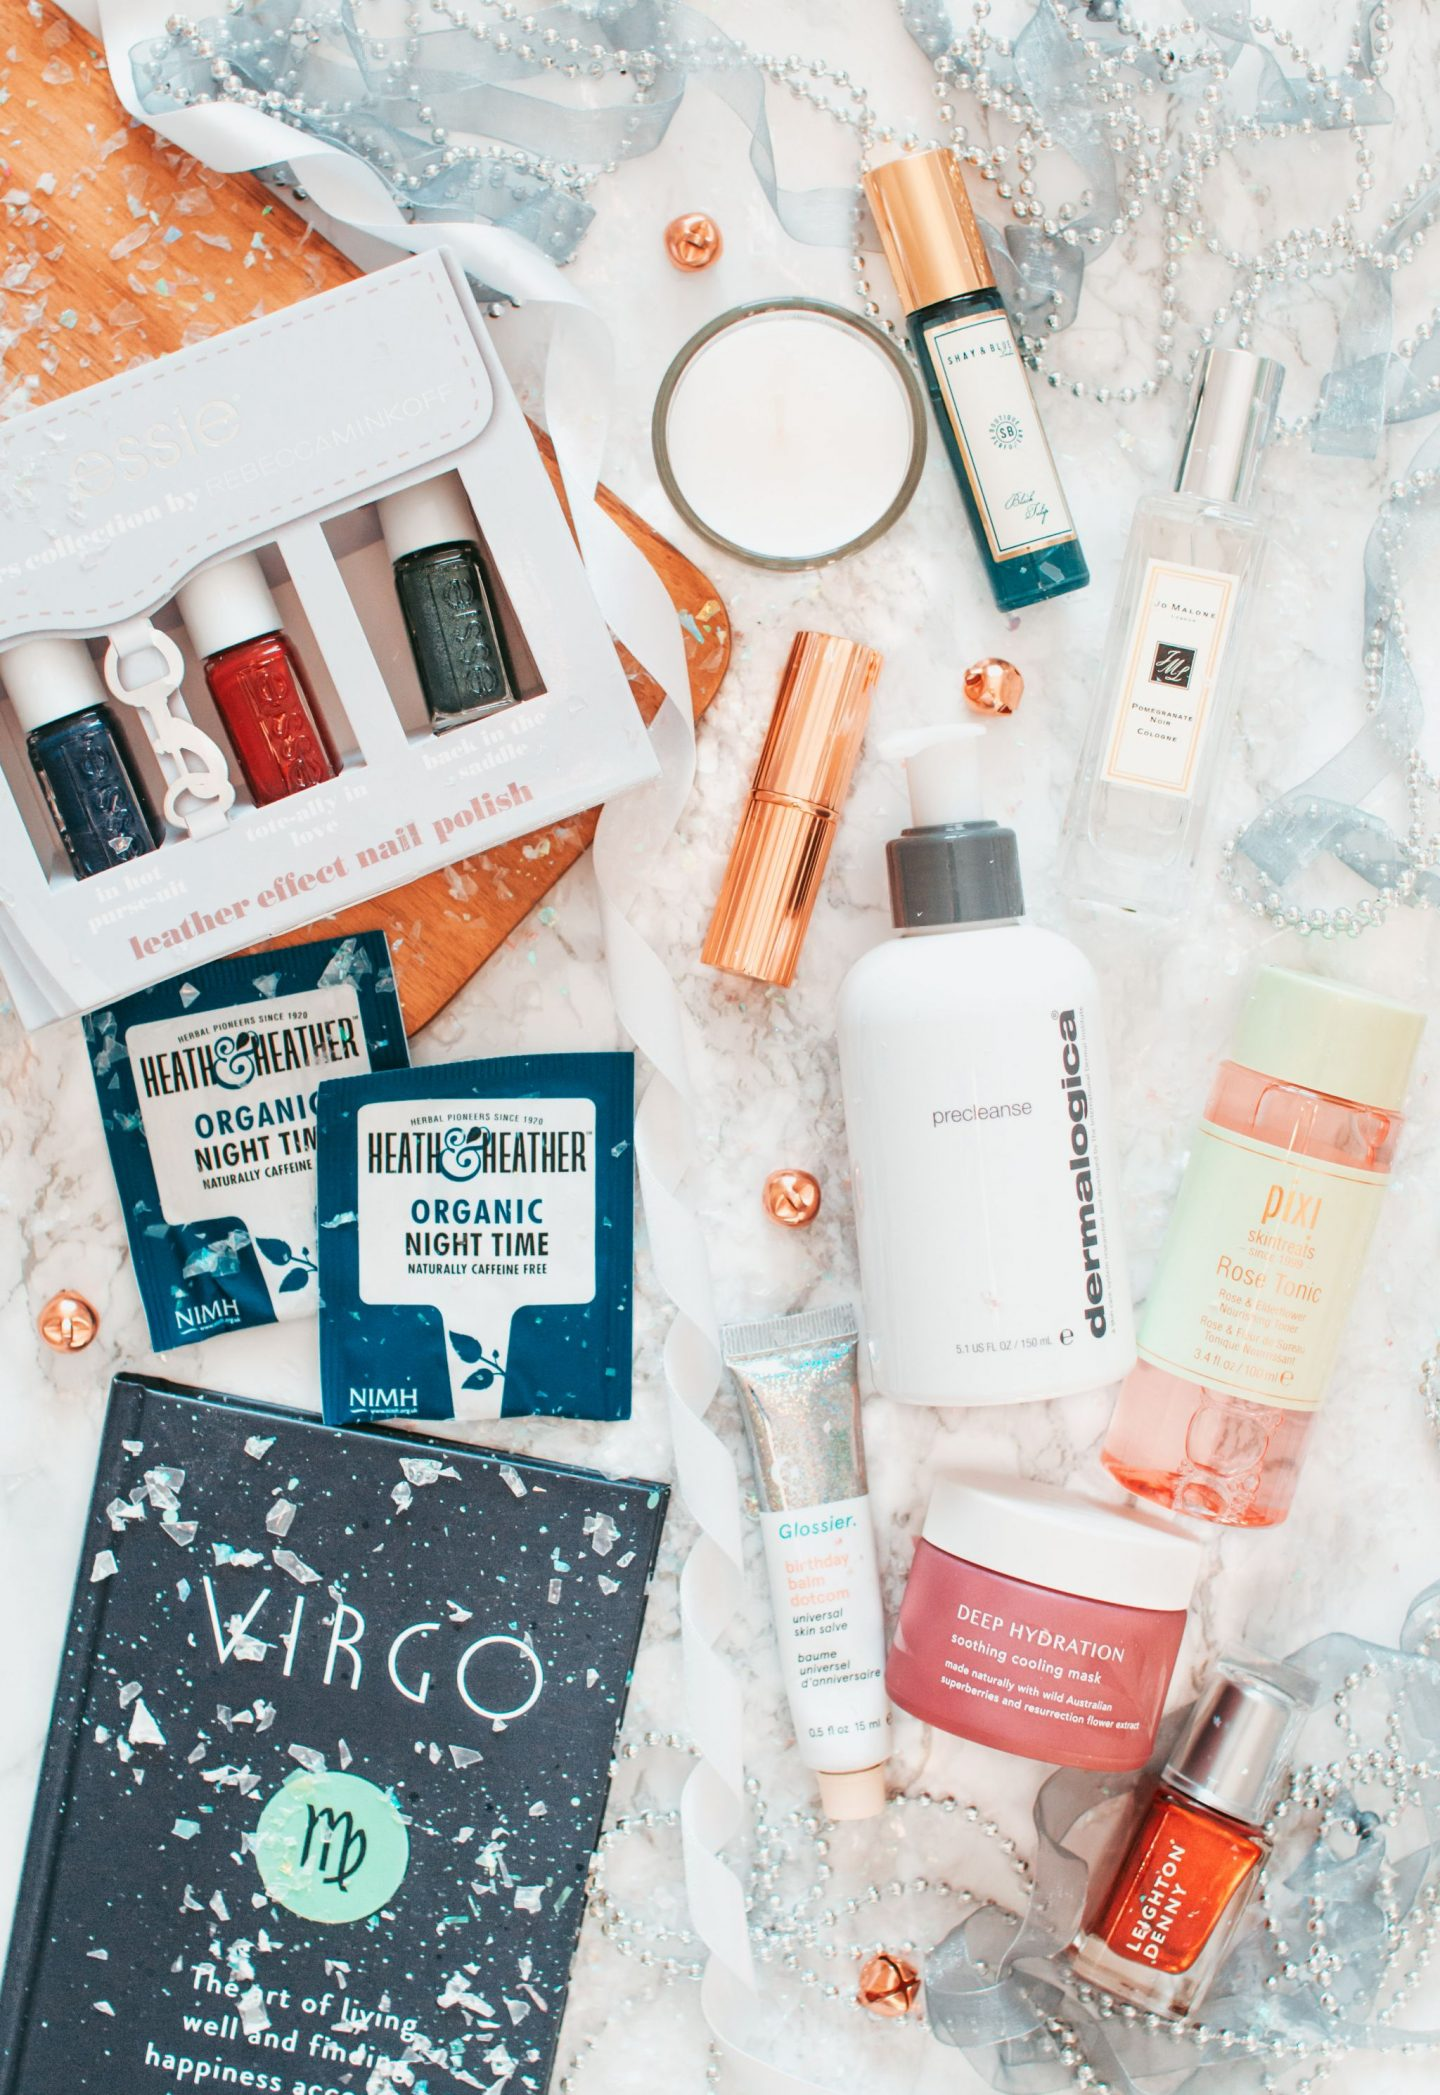 the ultimate gift guide for her, forever september, flatlay, lifestyle, beauty, christmas, gift guide, skincare, beauty, fragrance, charlotte tilbury, dermalogica, pixi, jo malone, shay and blue, essie, tea, virgo, books, tropic, lipstick, candle, anthropologie, diptique